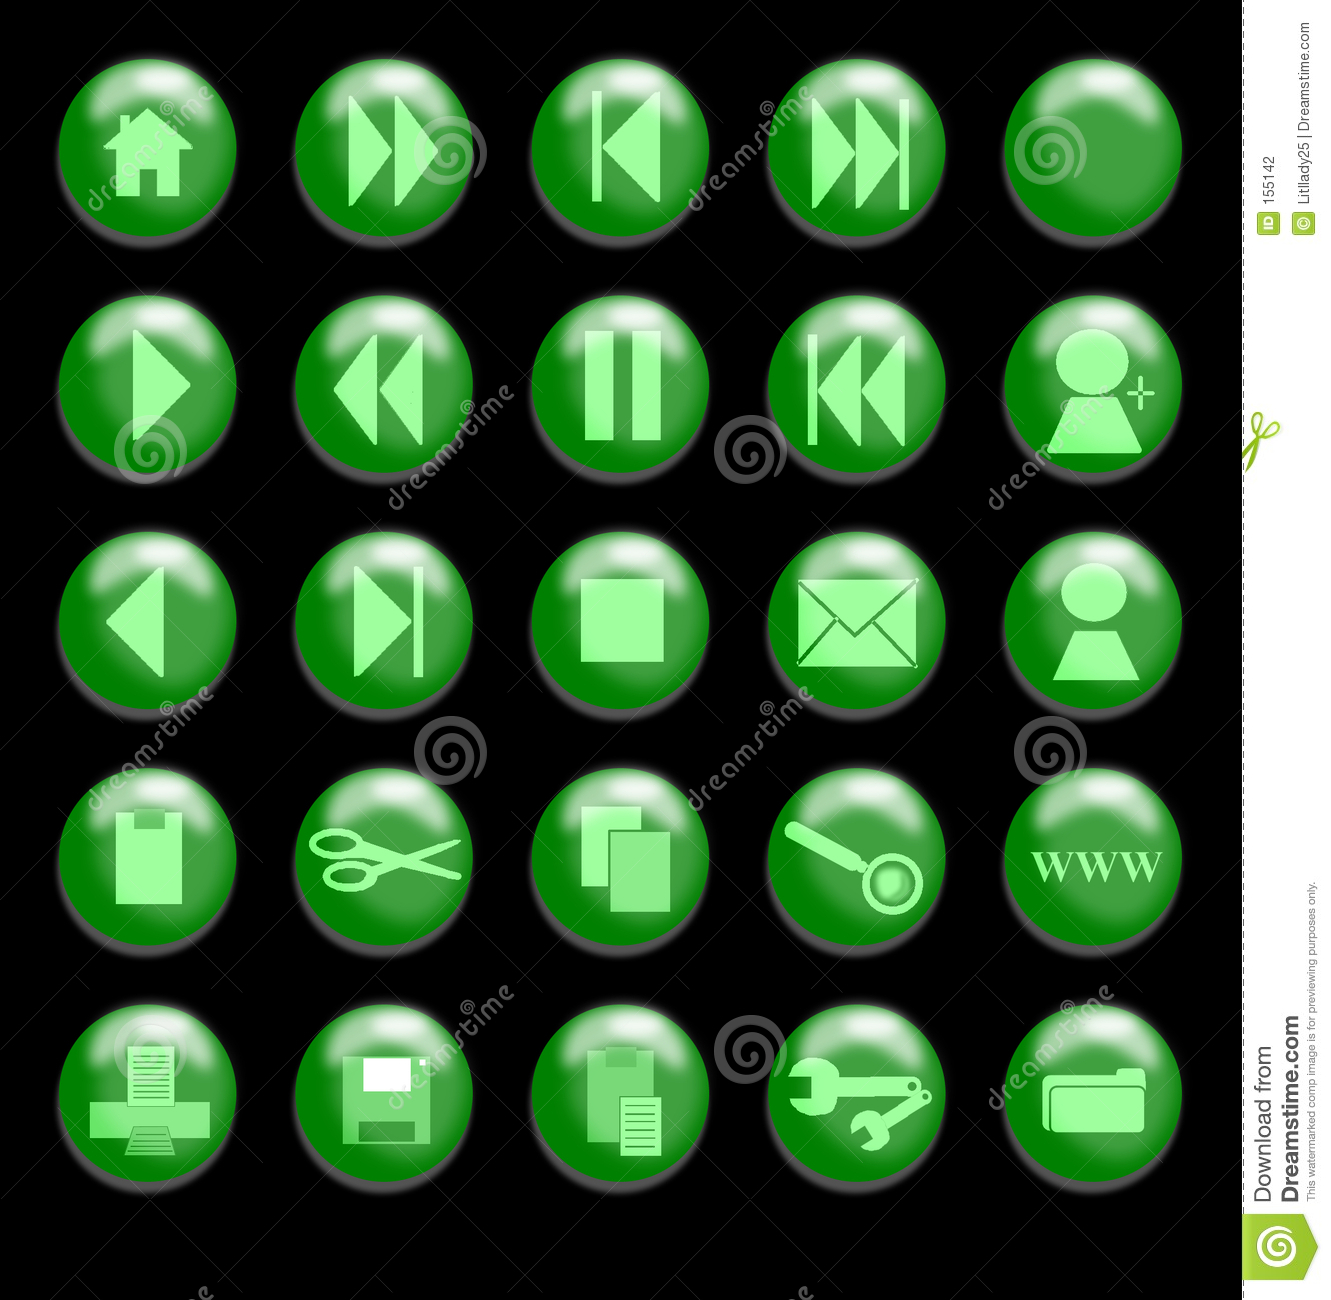 Green Glass Buttons on a Black Background